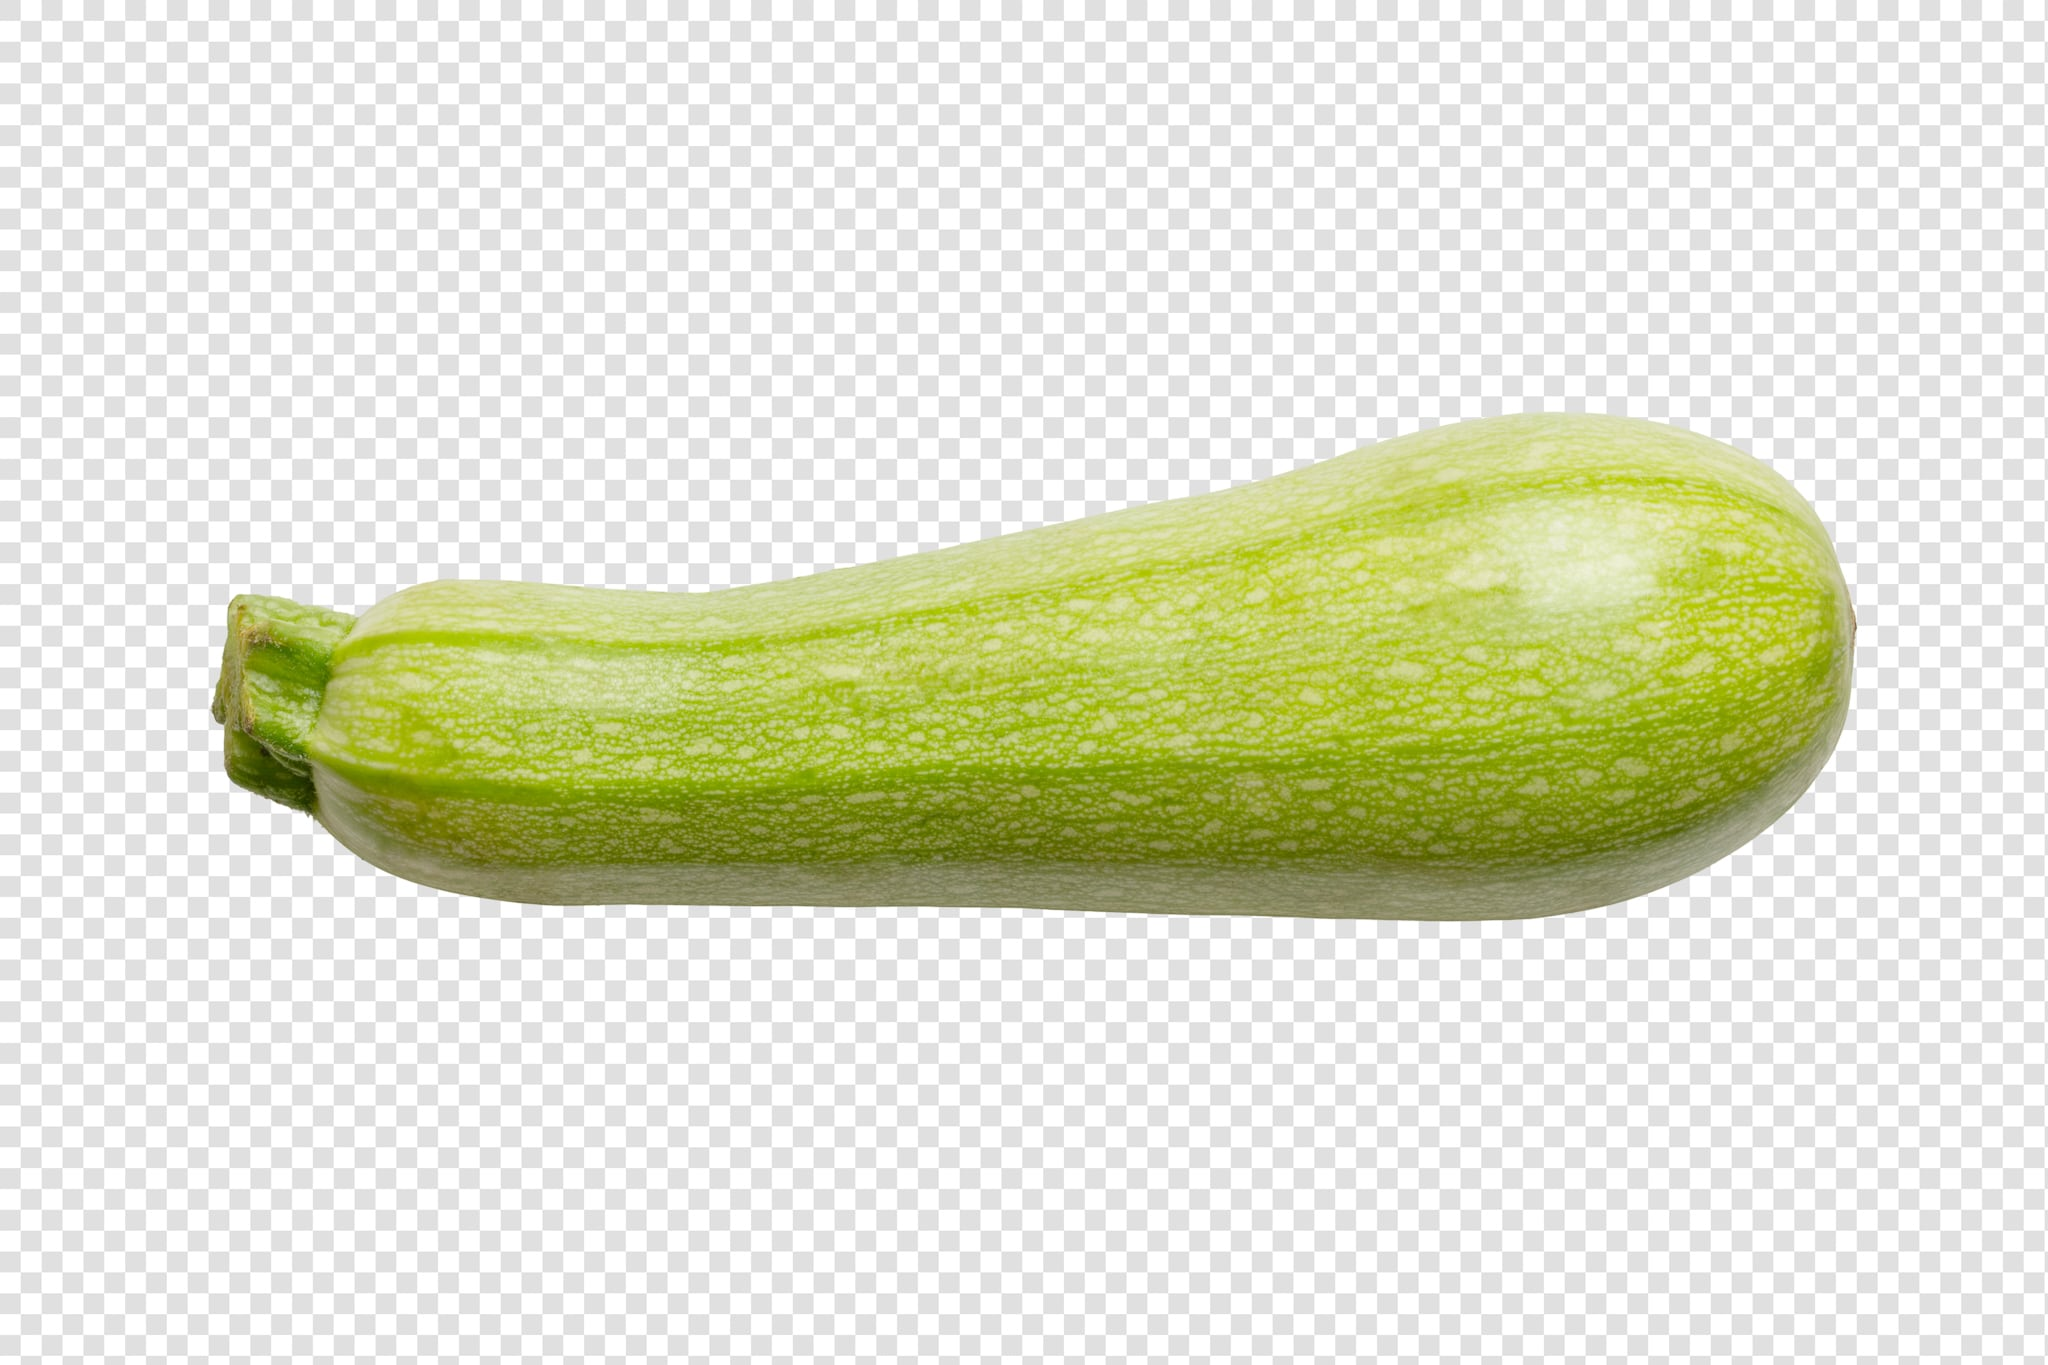 Clean Isolated PSD image of Squash on transparent background with separated shadow